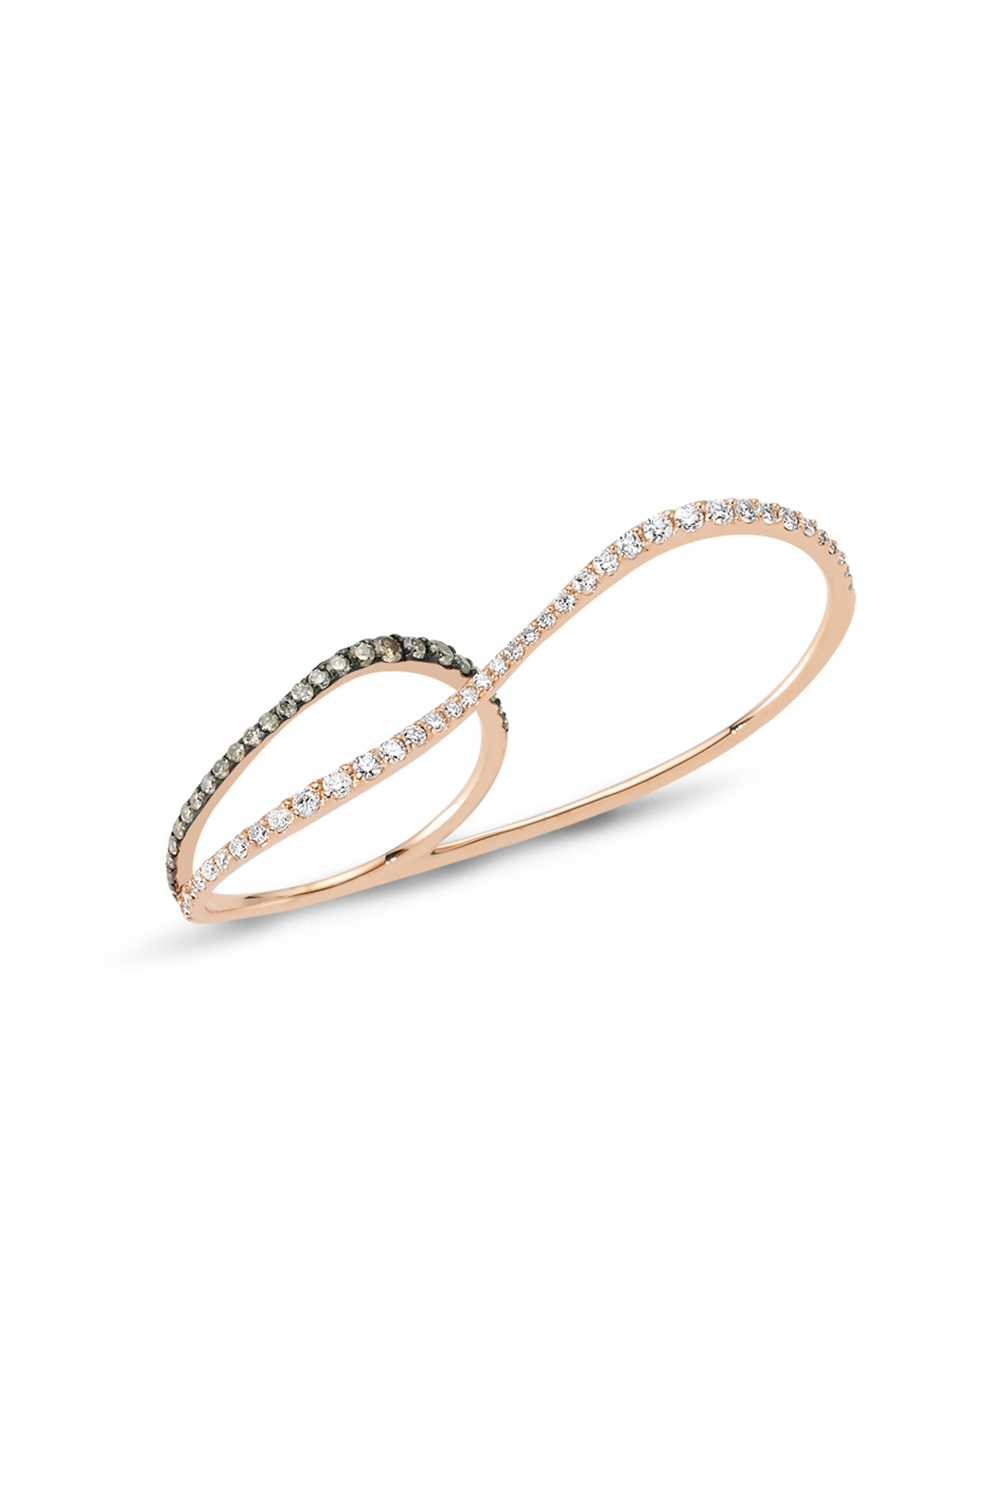 Thin Pink Gold Double Ring with White & Grey Diamonds